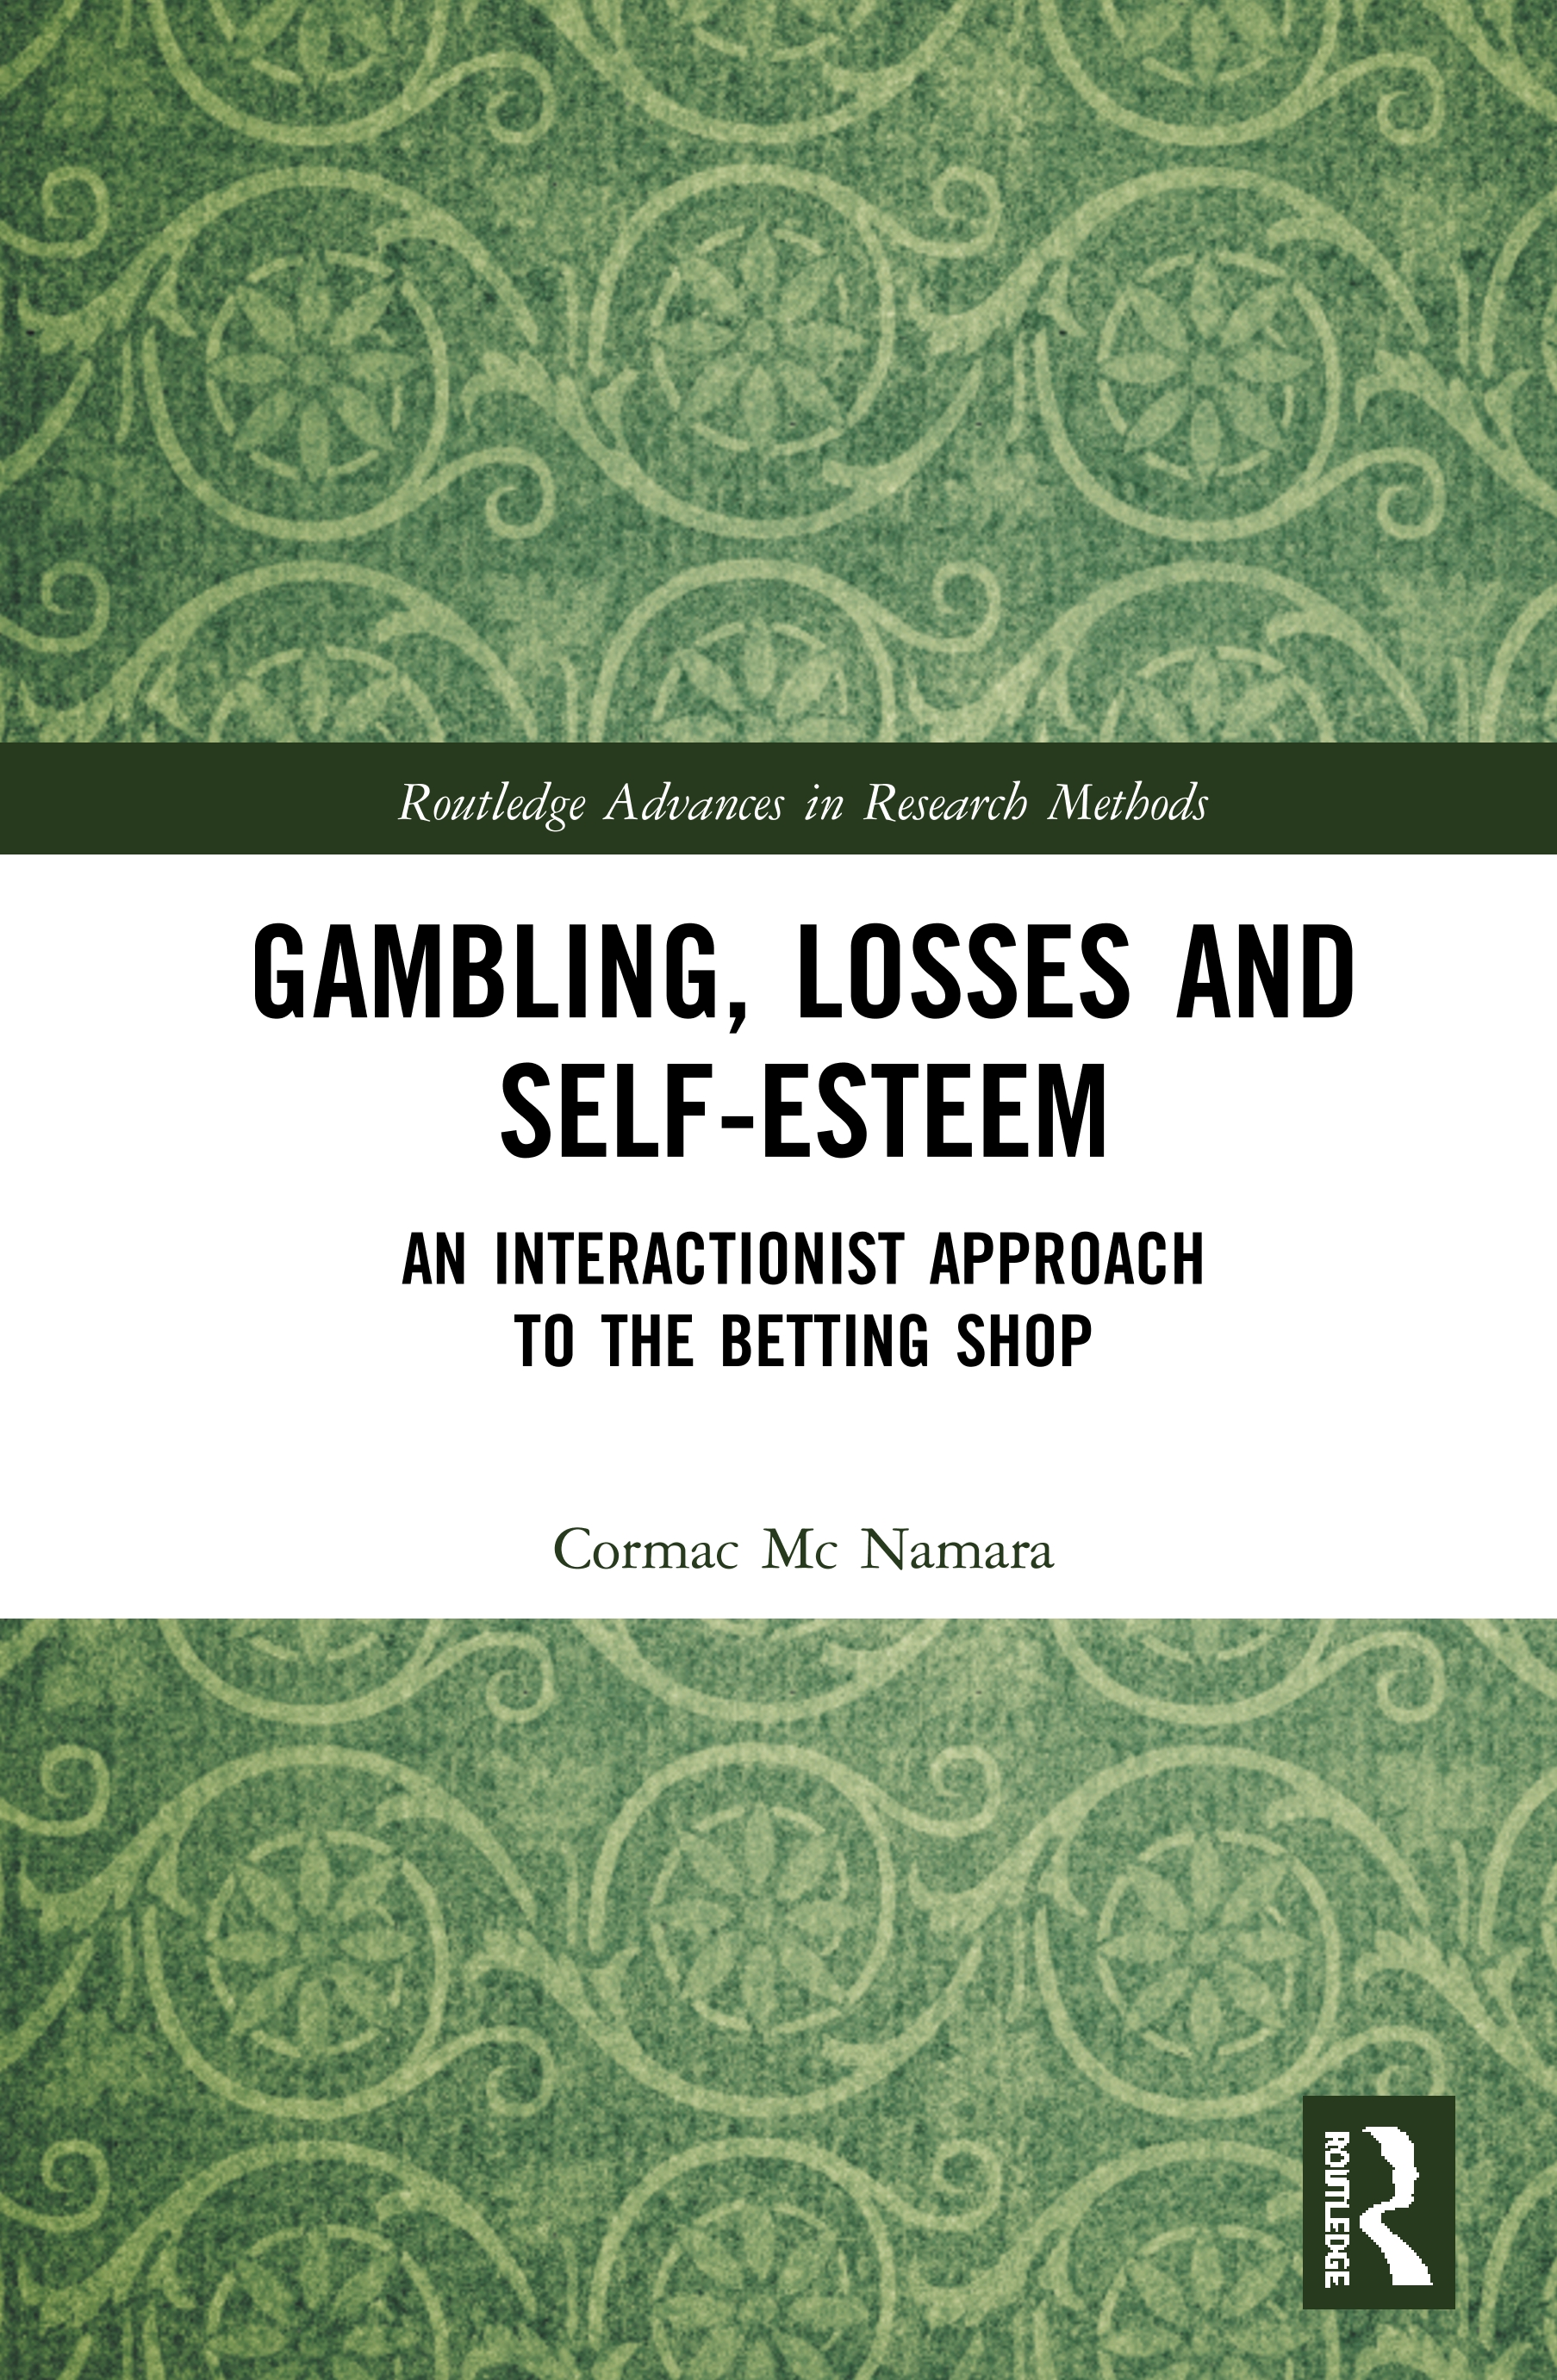 Gambling, Losses and Self-Esteem: An Interactionist Approach to the Betting Shop book cover